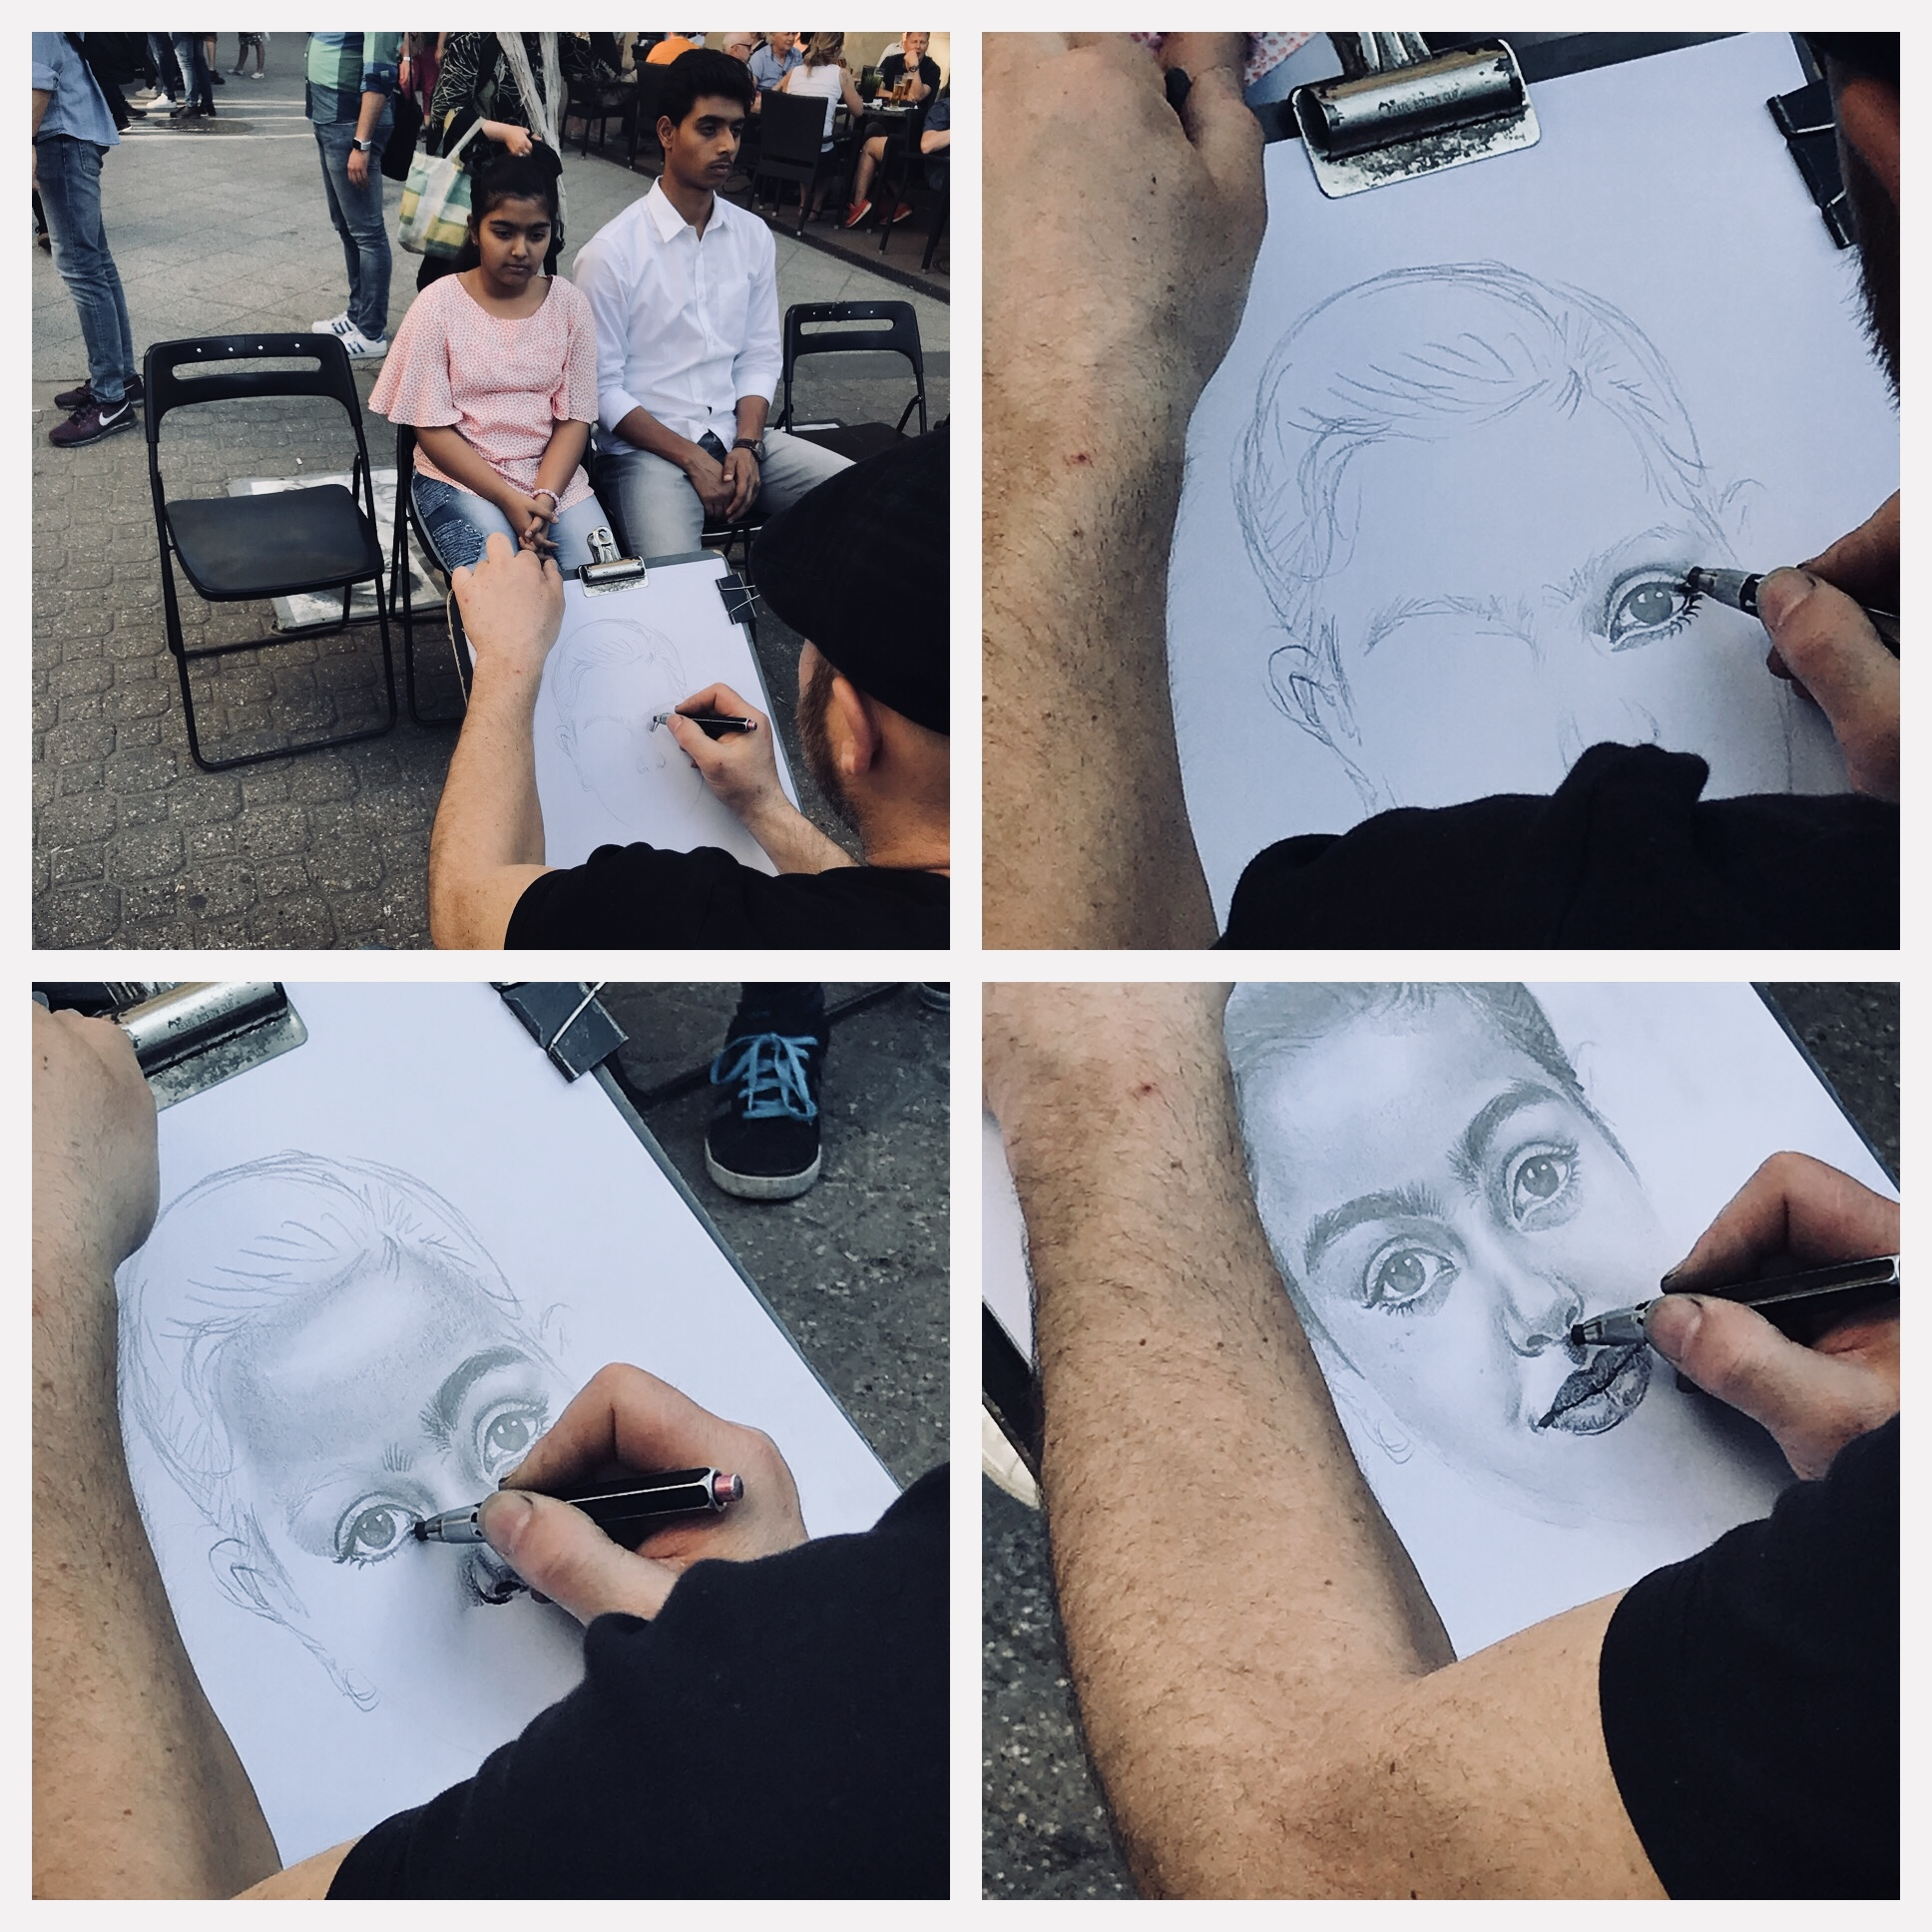 The Artist drawing - Budapest.